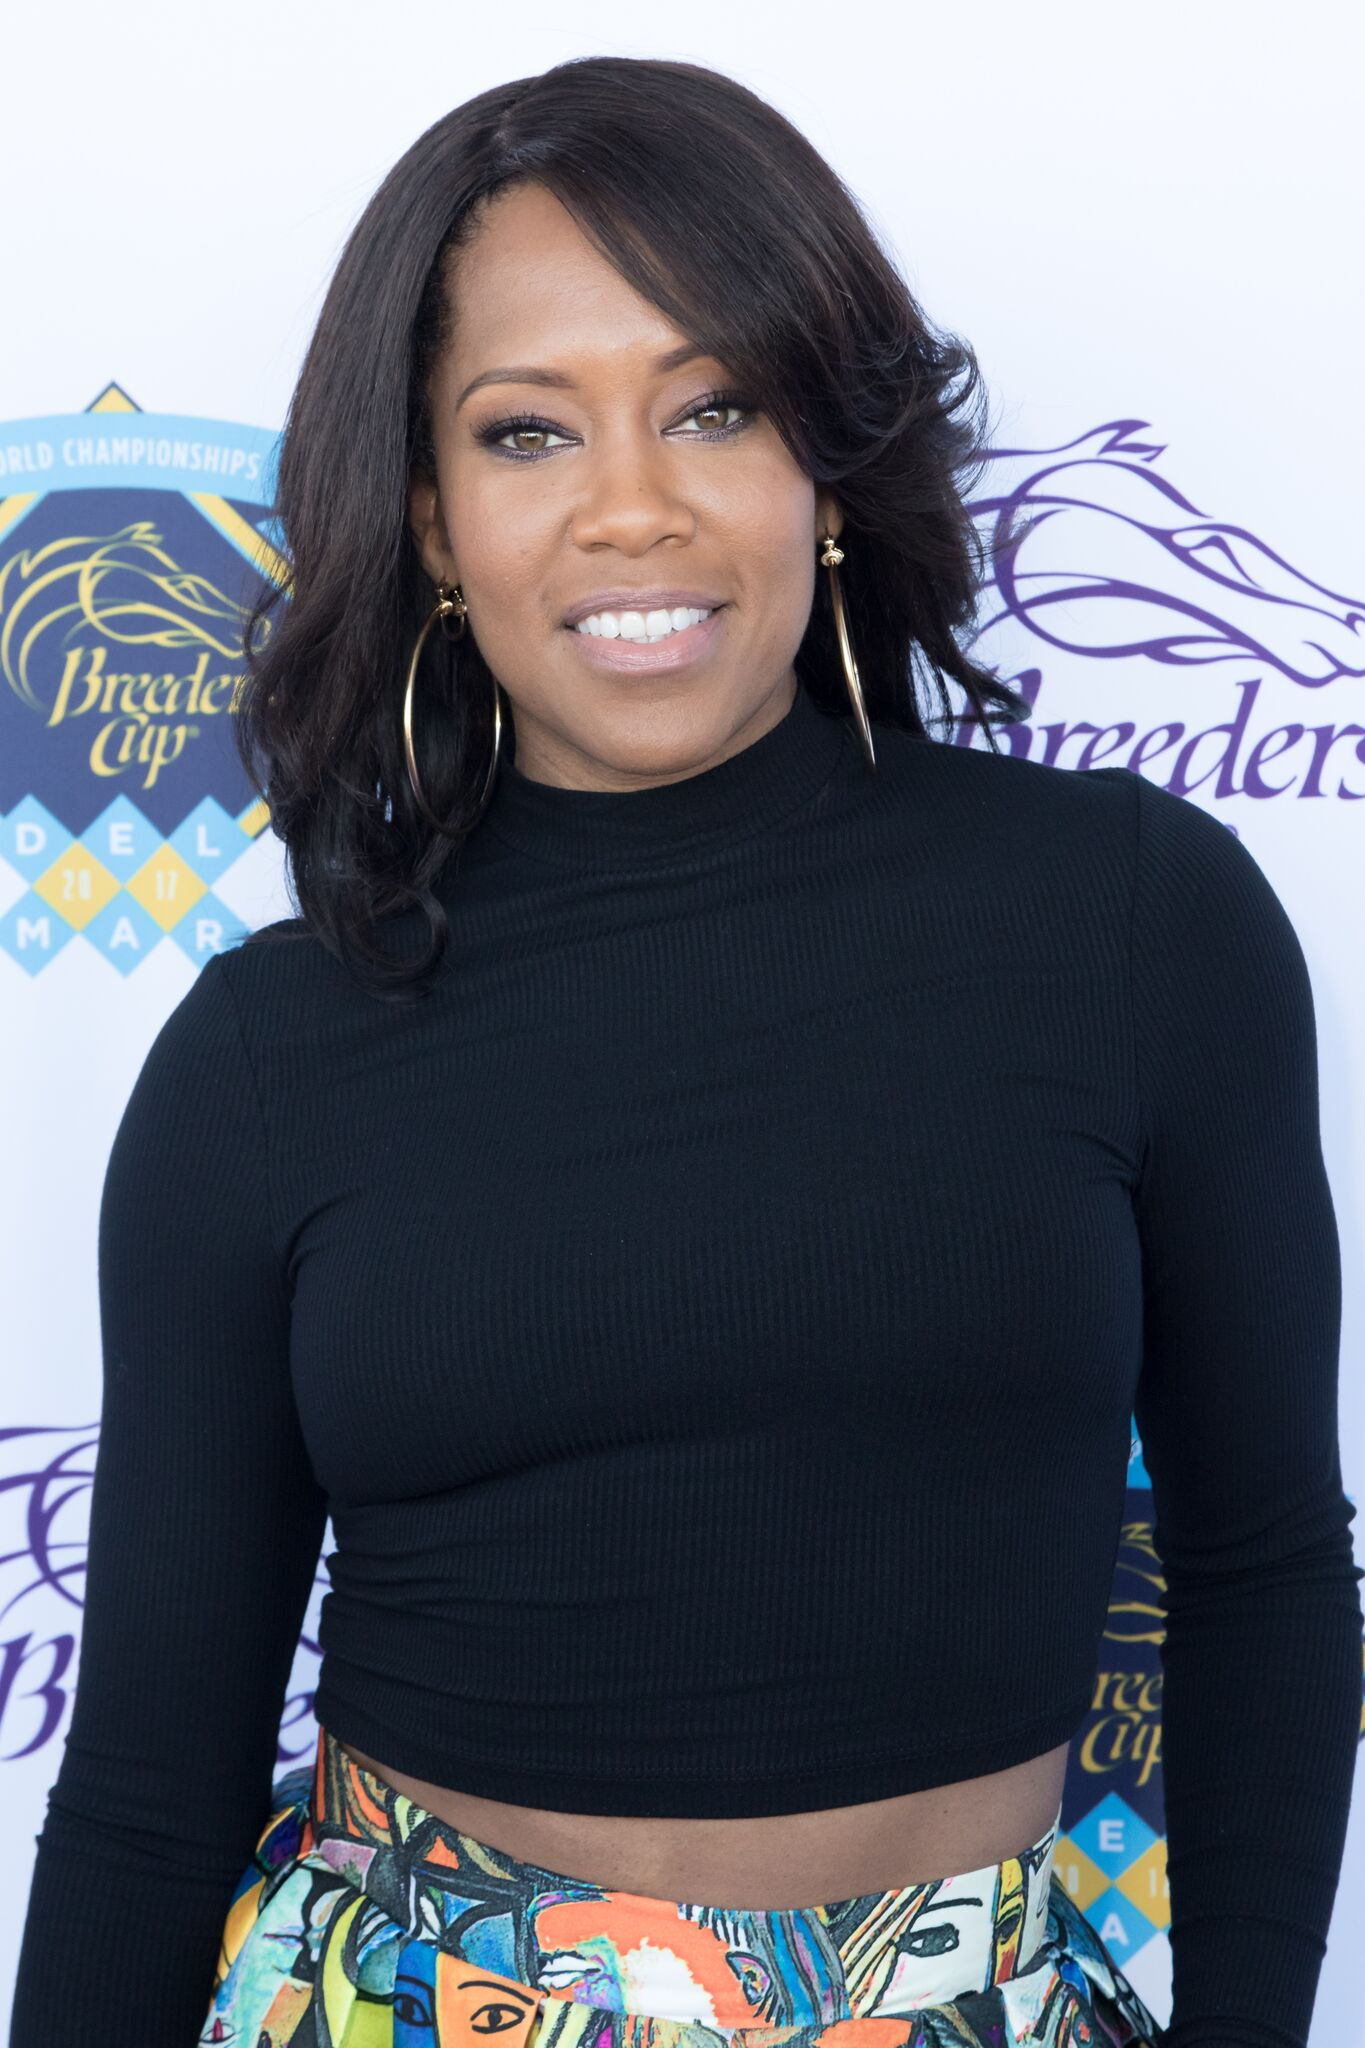 Actress Regina King attends the 2017 Breeders' Cup World Championship at Del Mar Thoroughbred Club | Getty Images